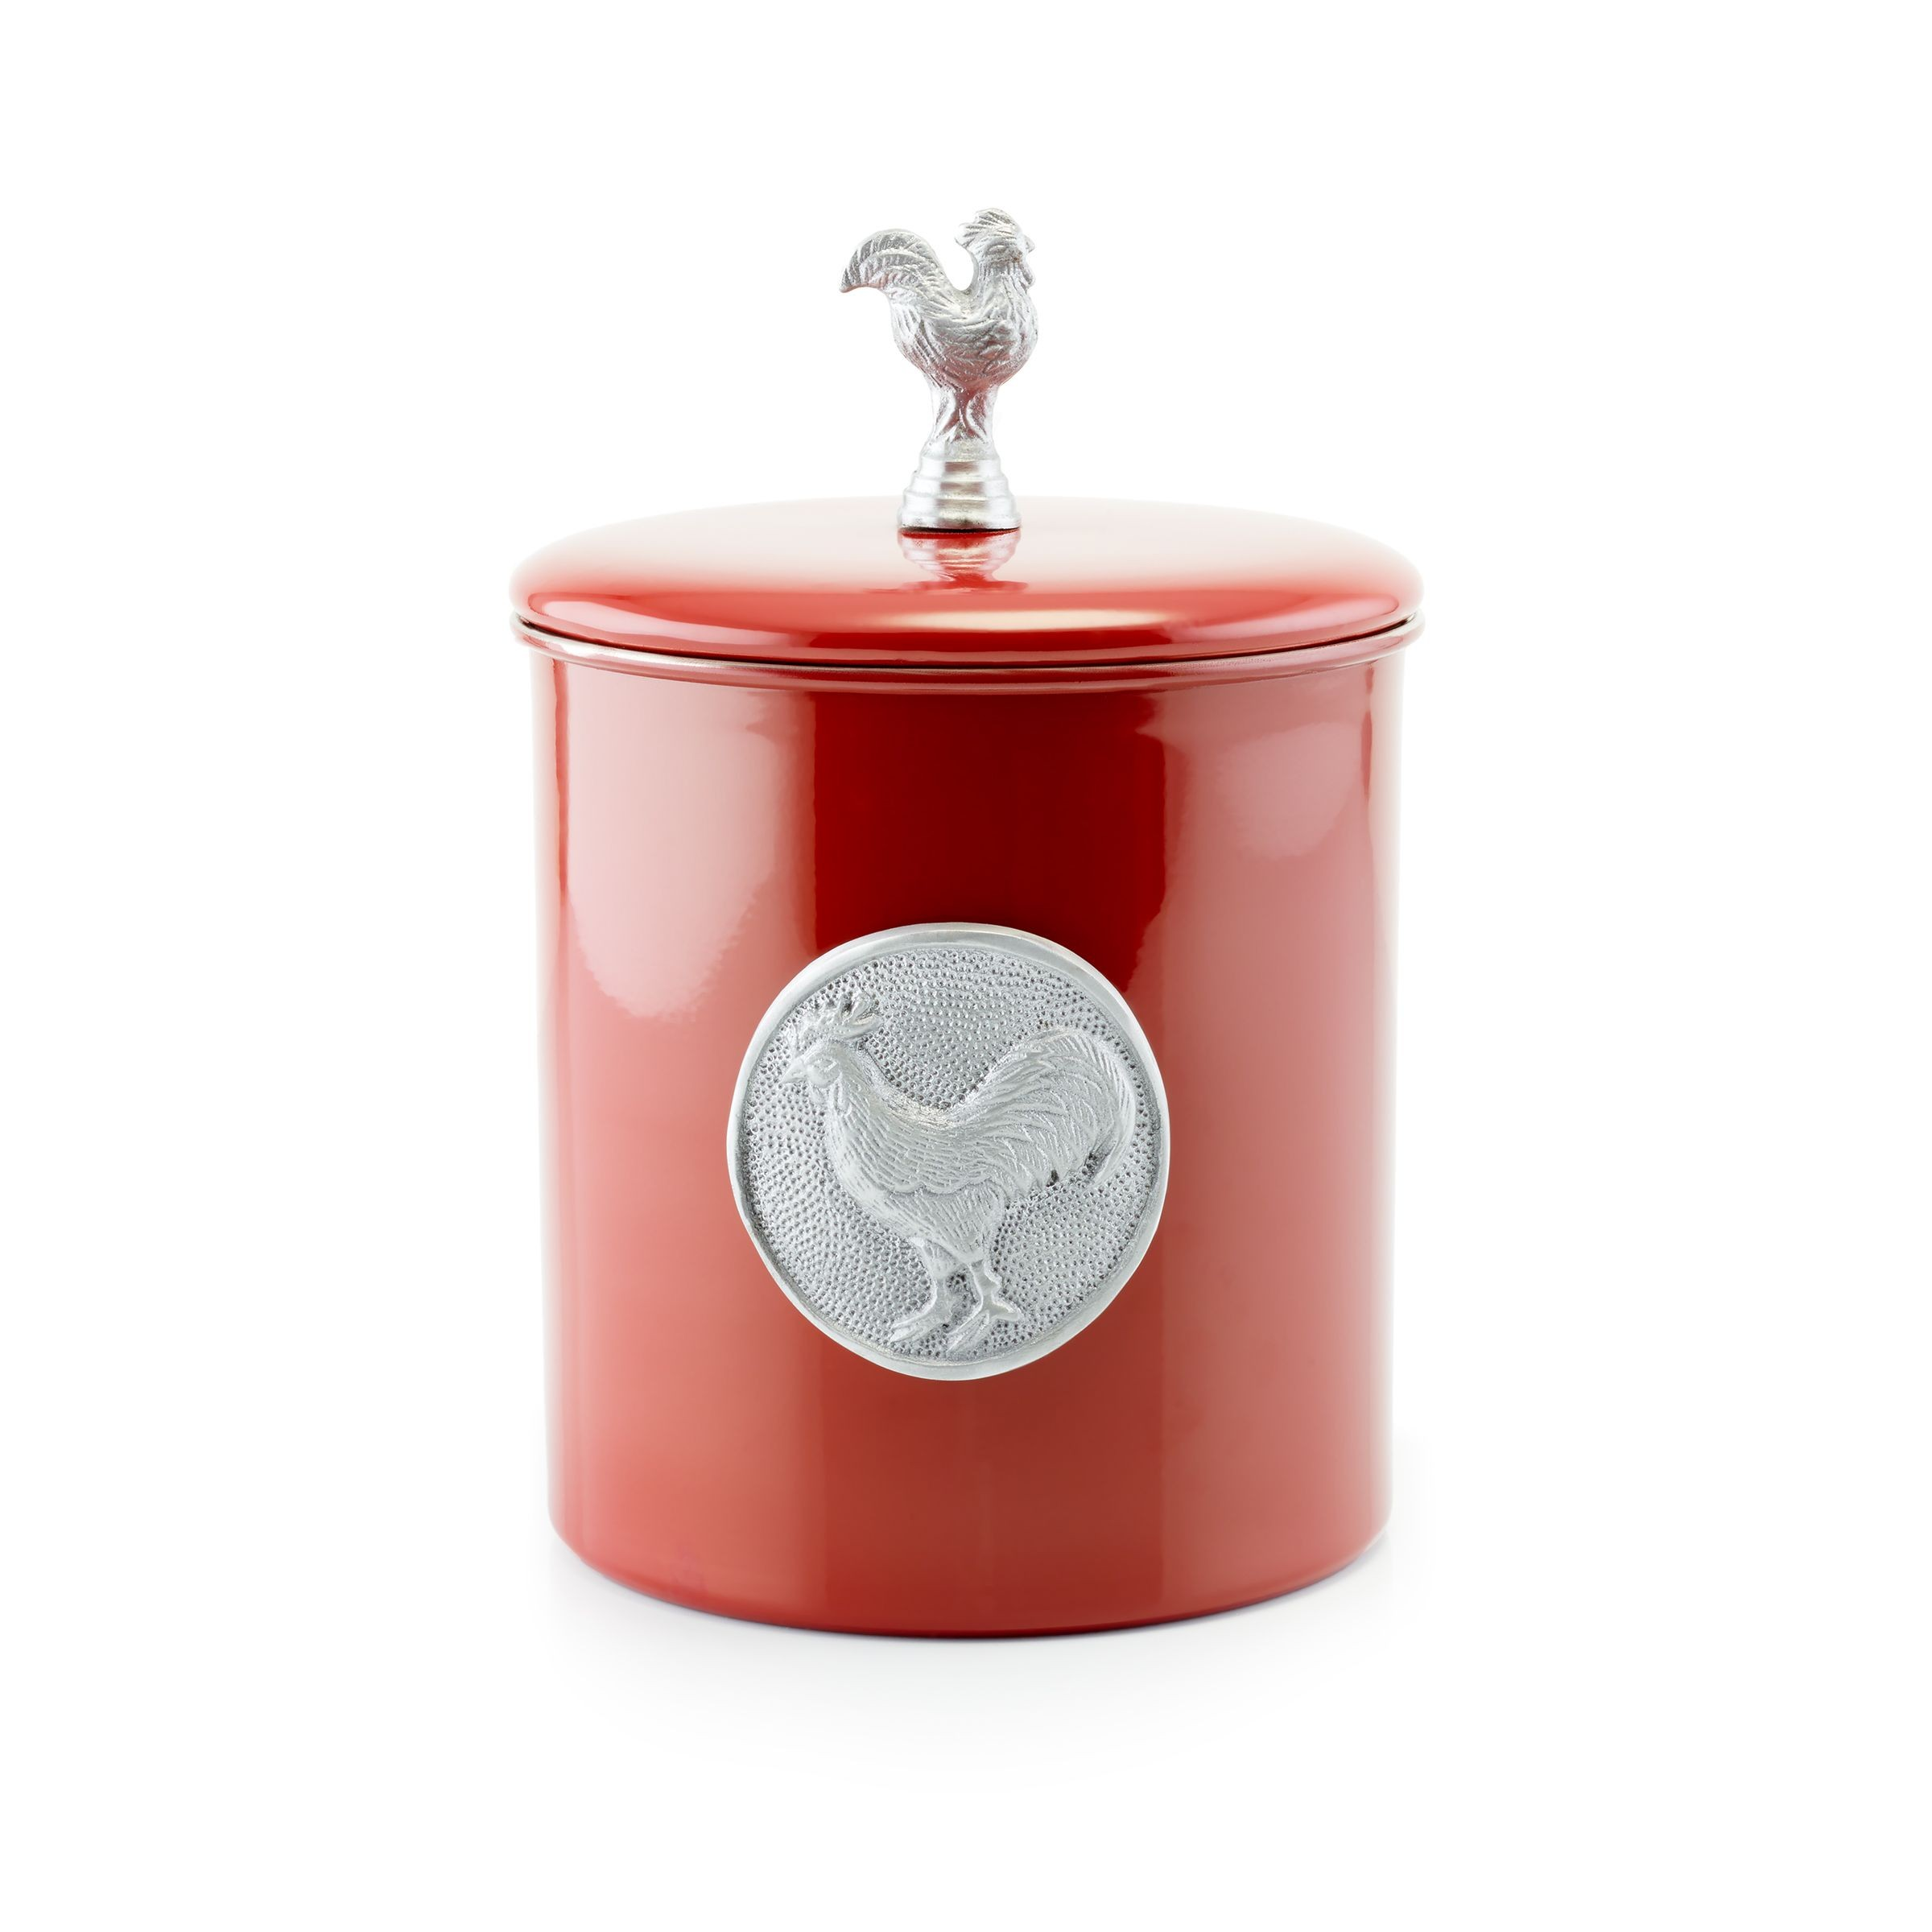 Old Dutch International 1744 Red Rooster Cookie Jar with Fresh Seal Cover, 4 Qt.